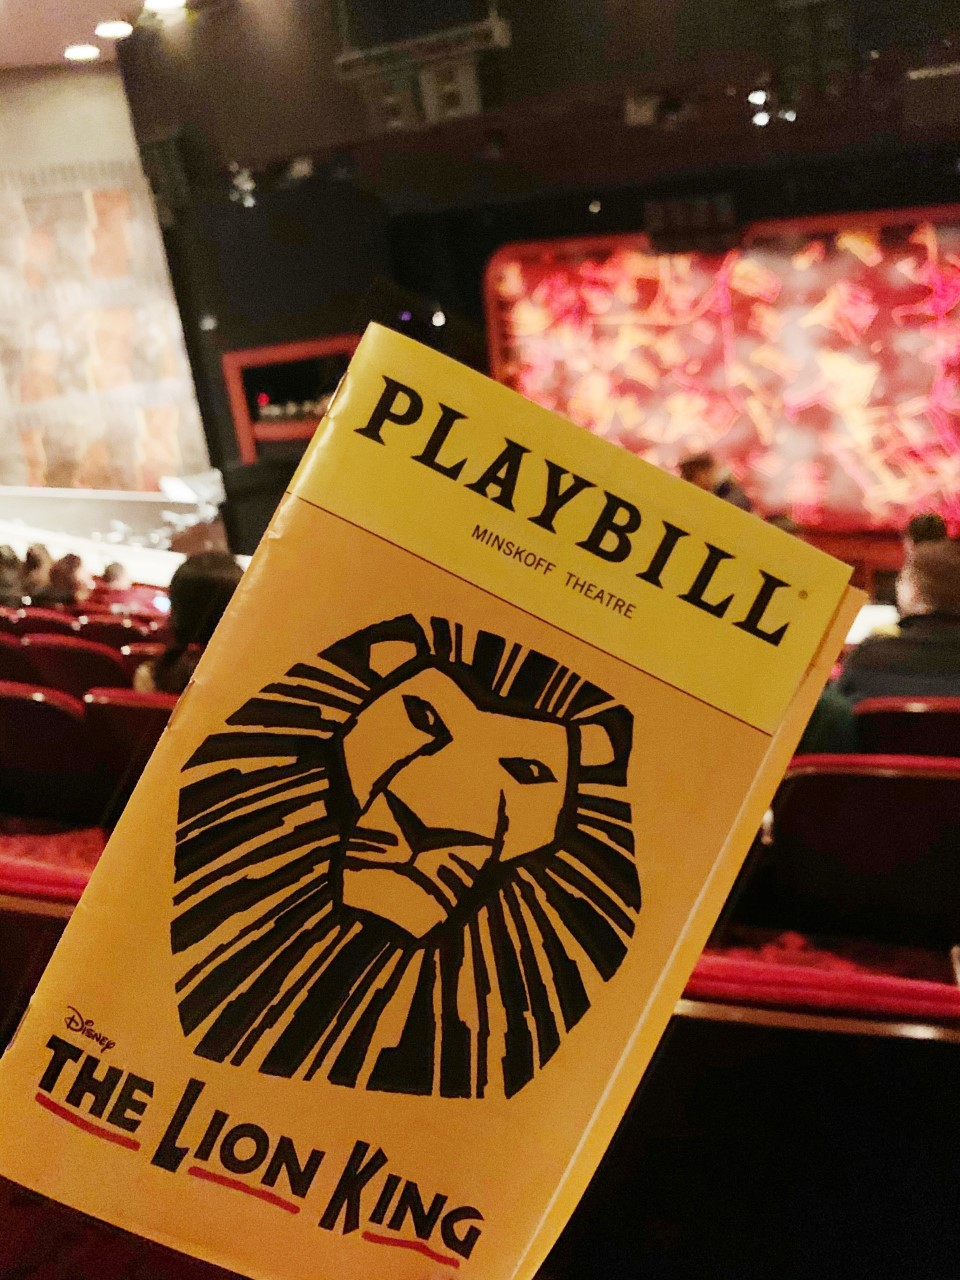 The Lion King Minskoff Theatre